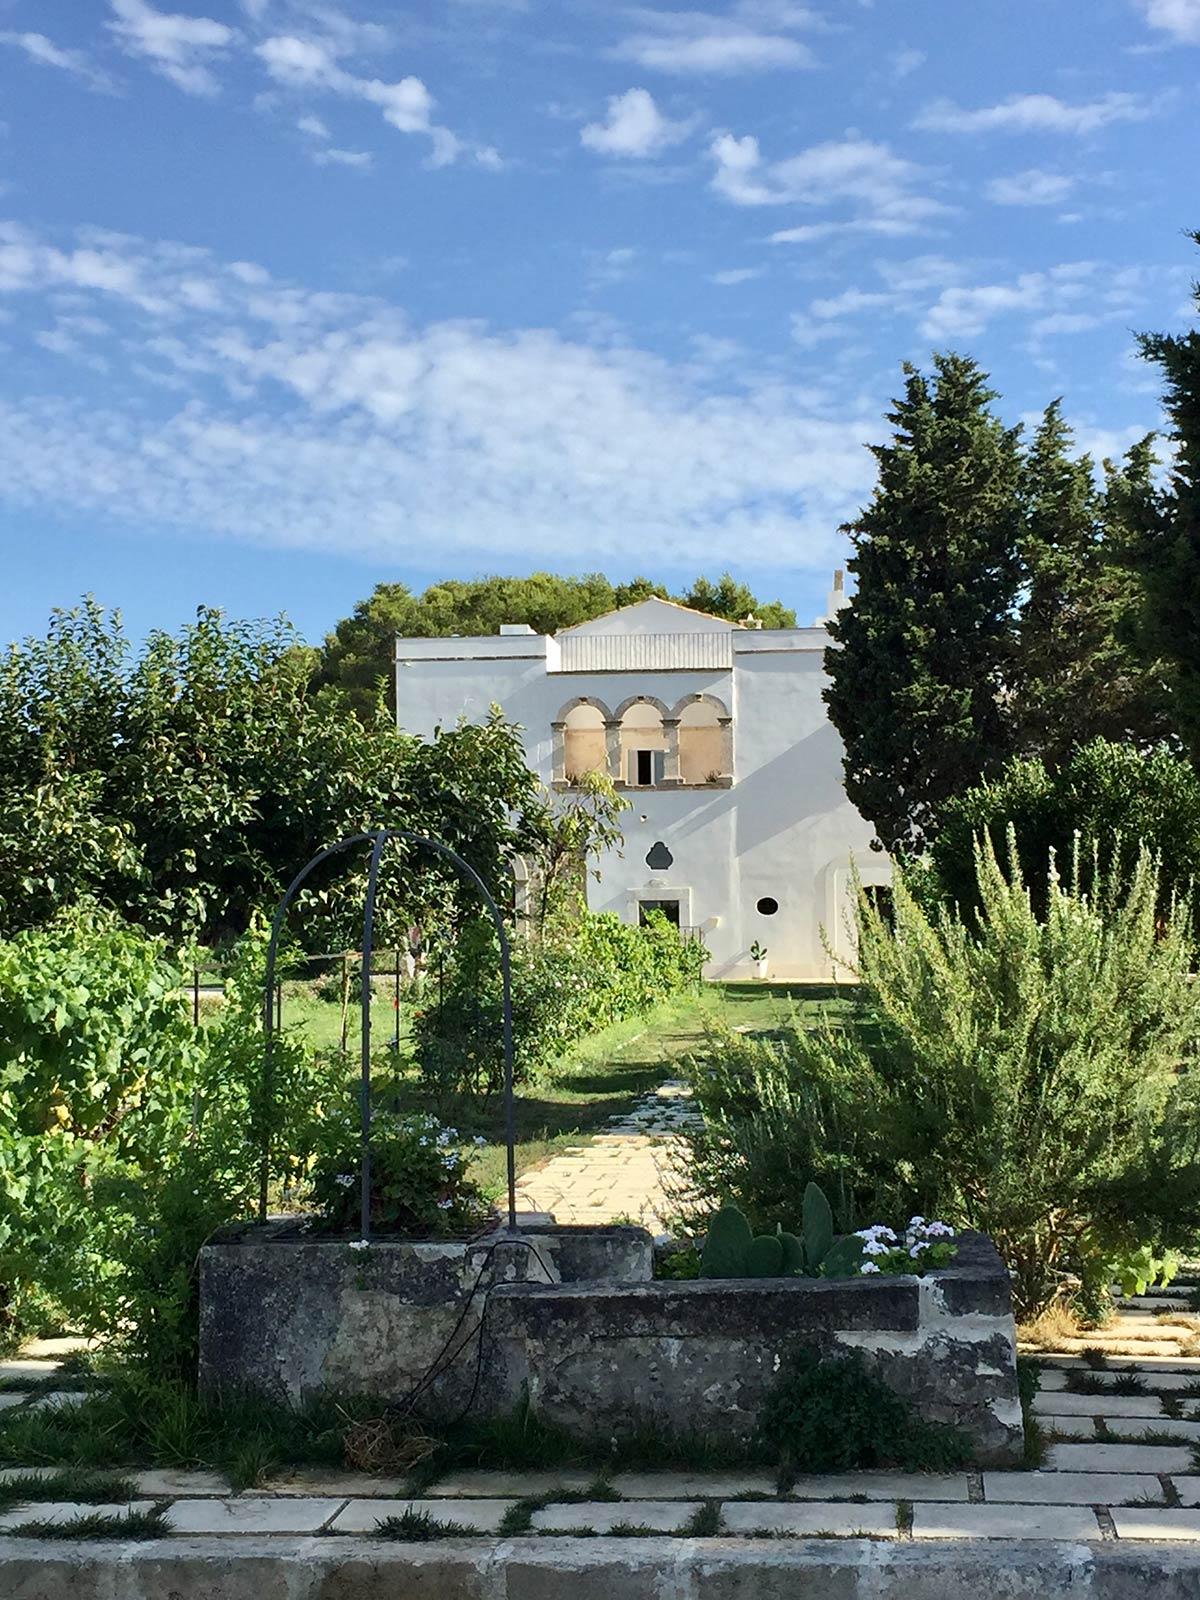 Les Bed and Breakfast en Italie